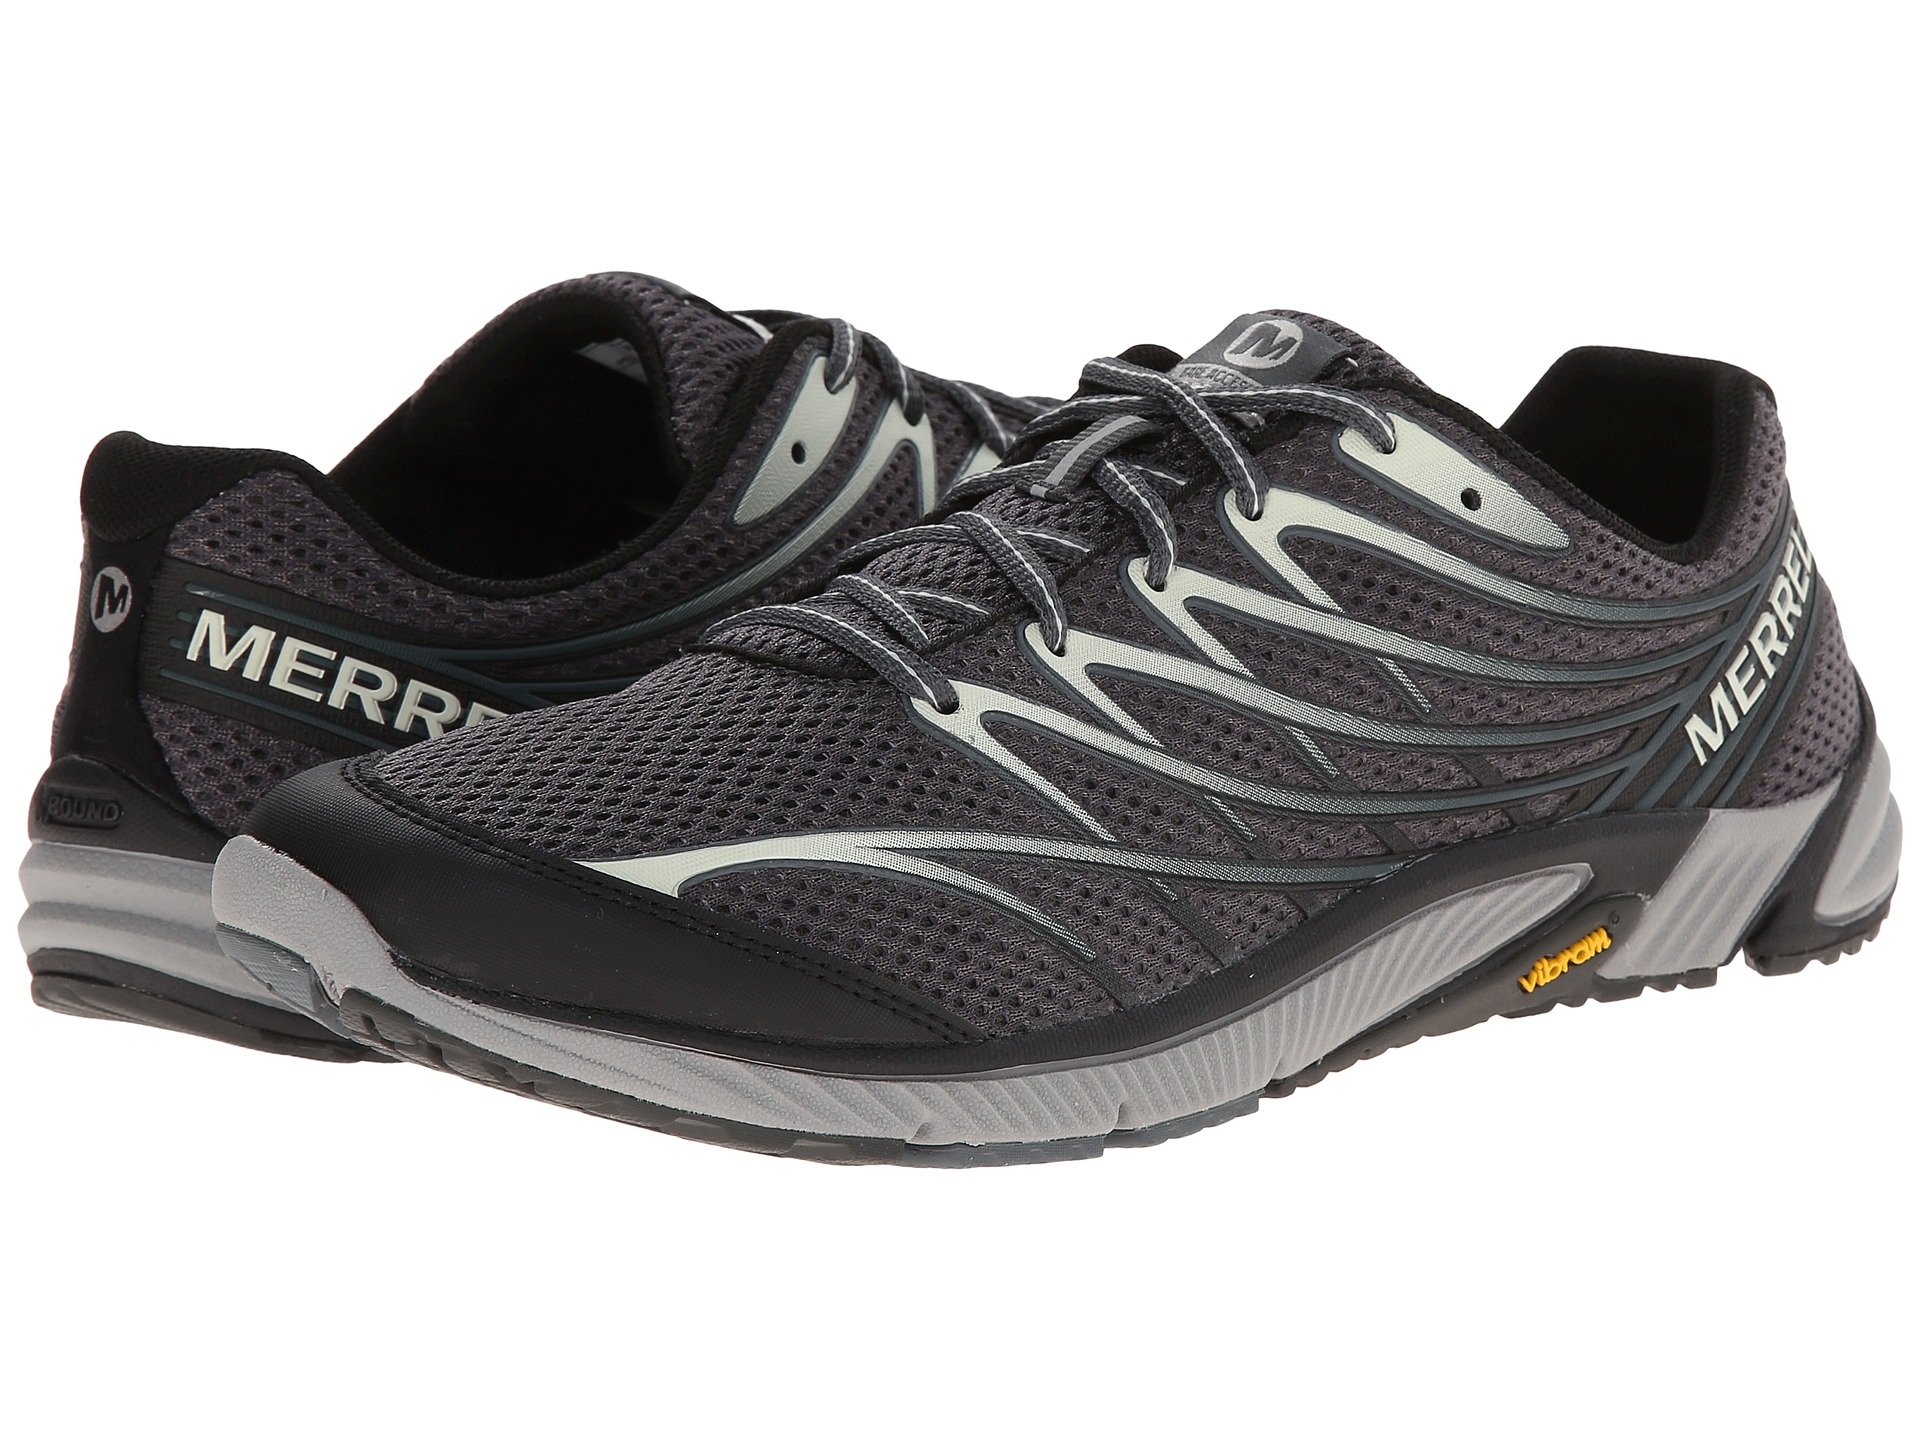 Merrell women's shoes are built on Merrell's outdoor heritage, quality, and performance. Whether you are a casual walker or looking to hike some serious mountain trails, the women's collection from Merrell provides maximum foot protection and comfort.